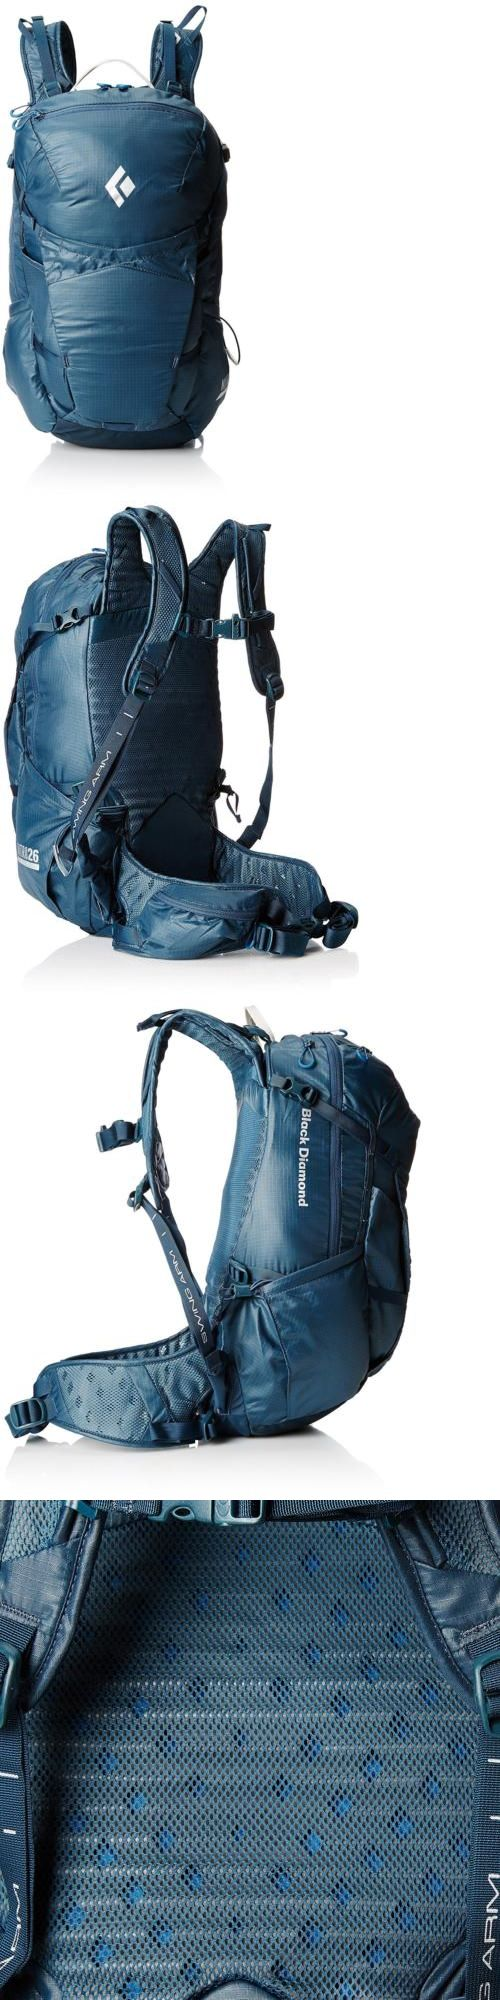 Other Camping Hiking Backpacks 36109: Black Diamond Nitro 26 Backpack Moroccan Blue Small Medium -> BUY IT NOW ONLY: $200.95 on eBay!